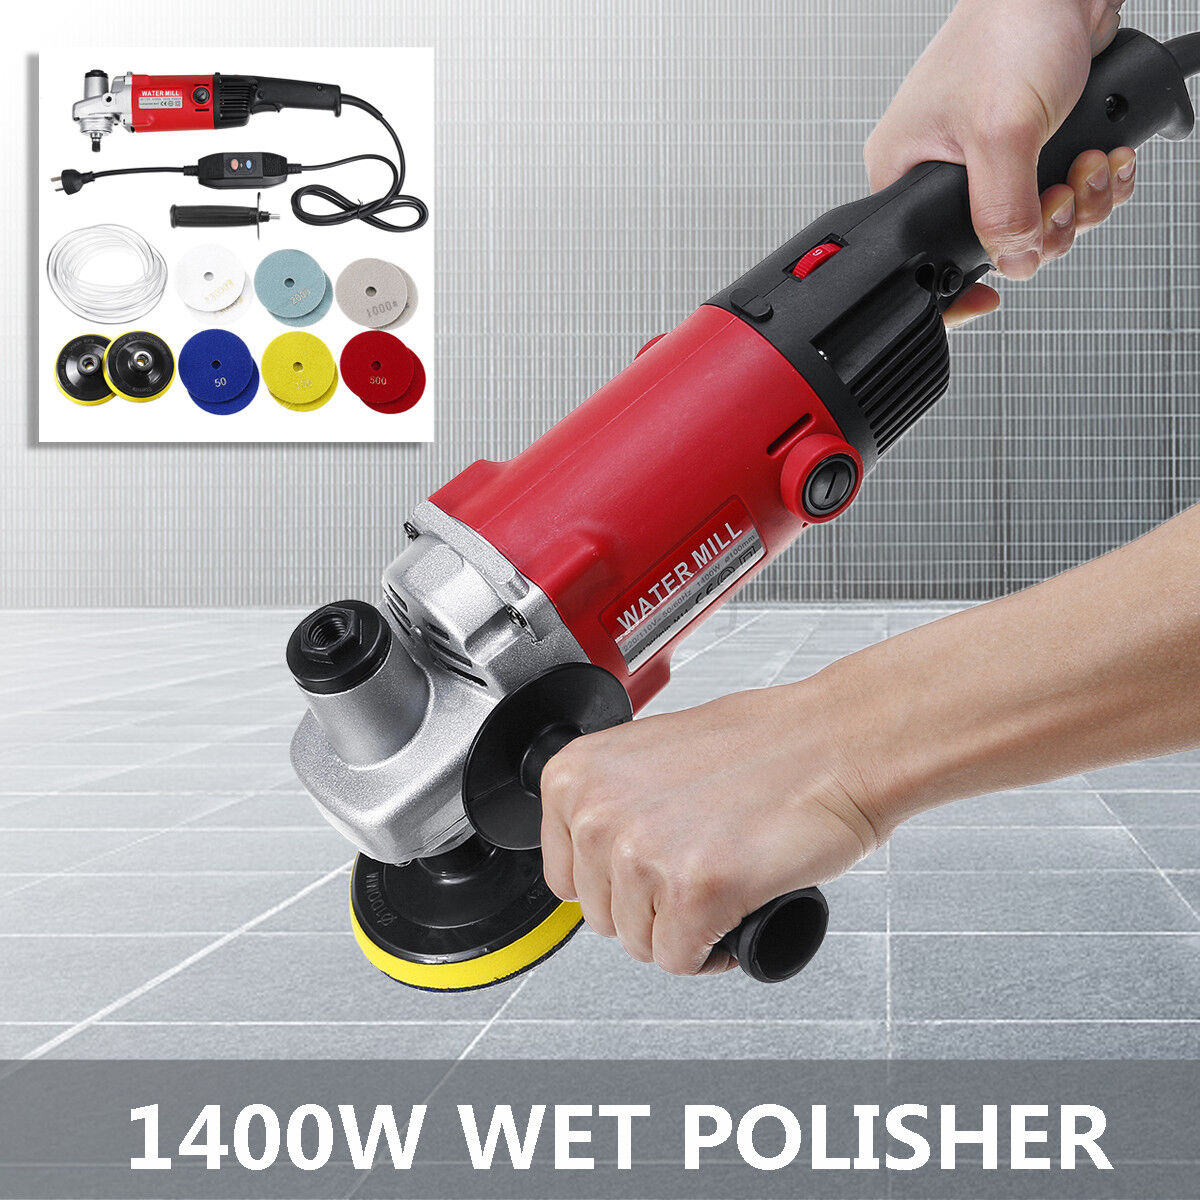 1400W WET Polisher Grinder Diamond Polishing pads KIT fr Concrete Marble